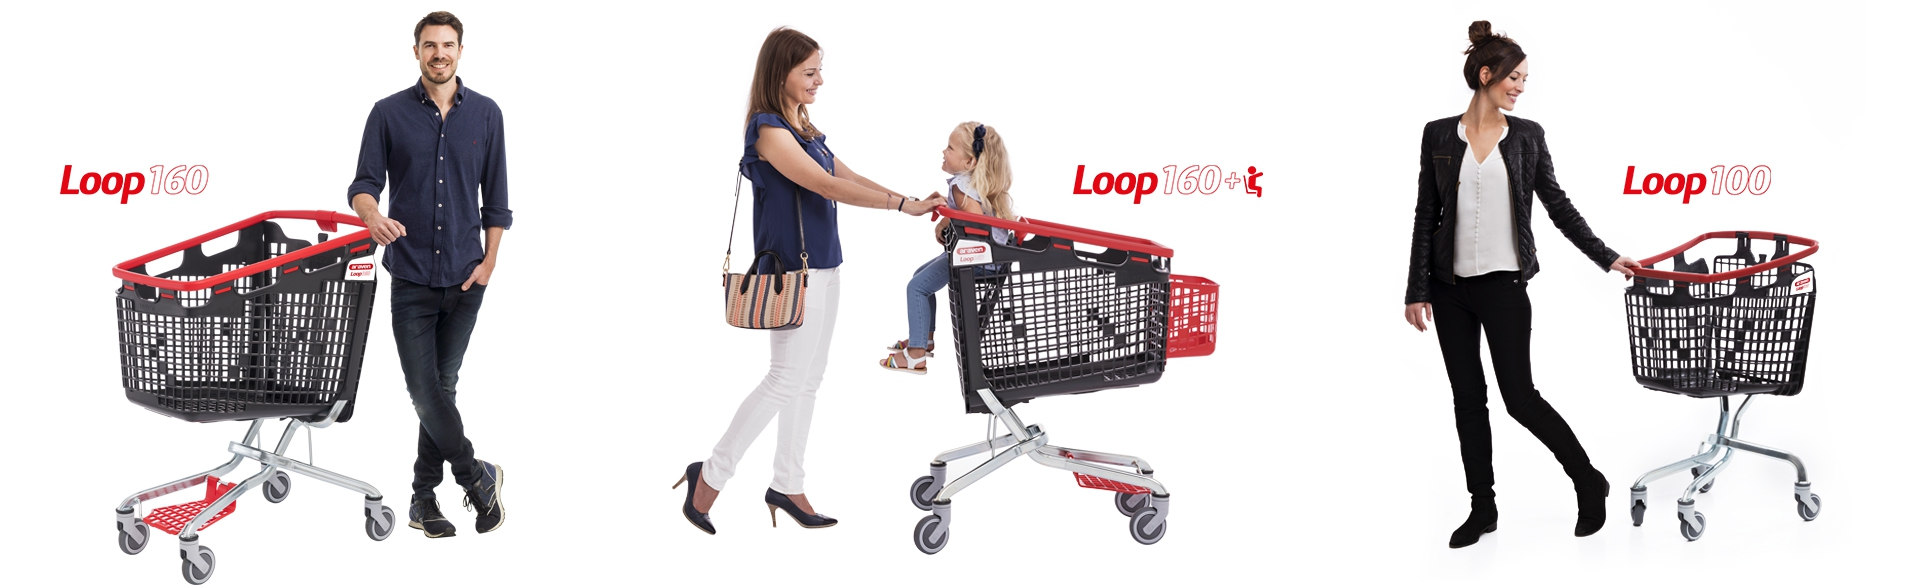 Live the LOOP experience!